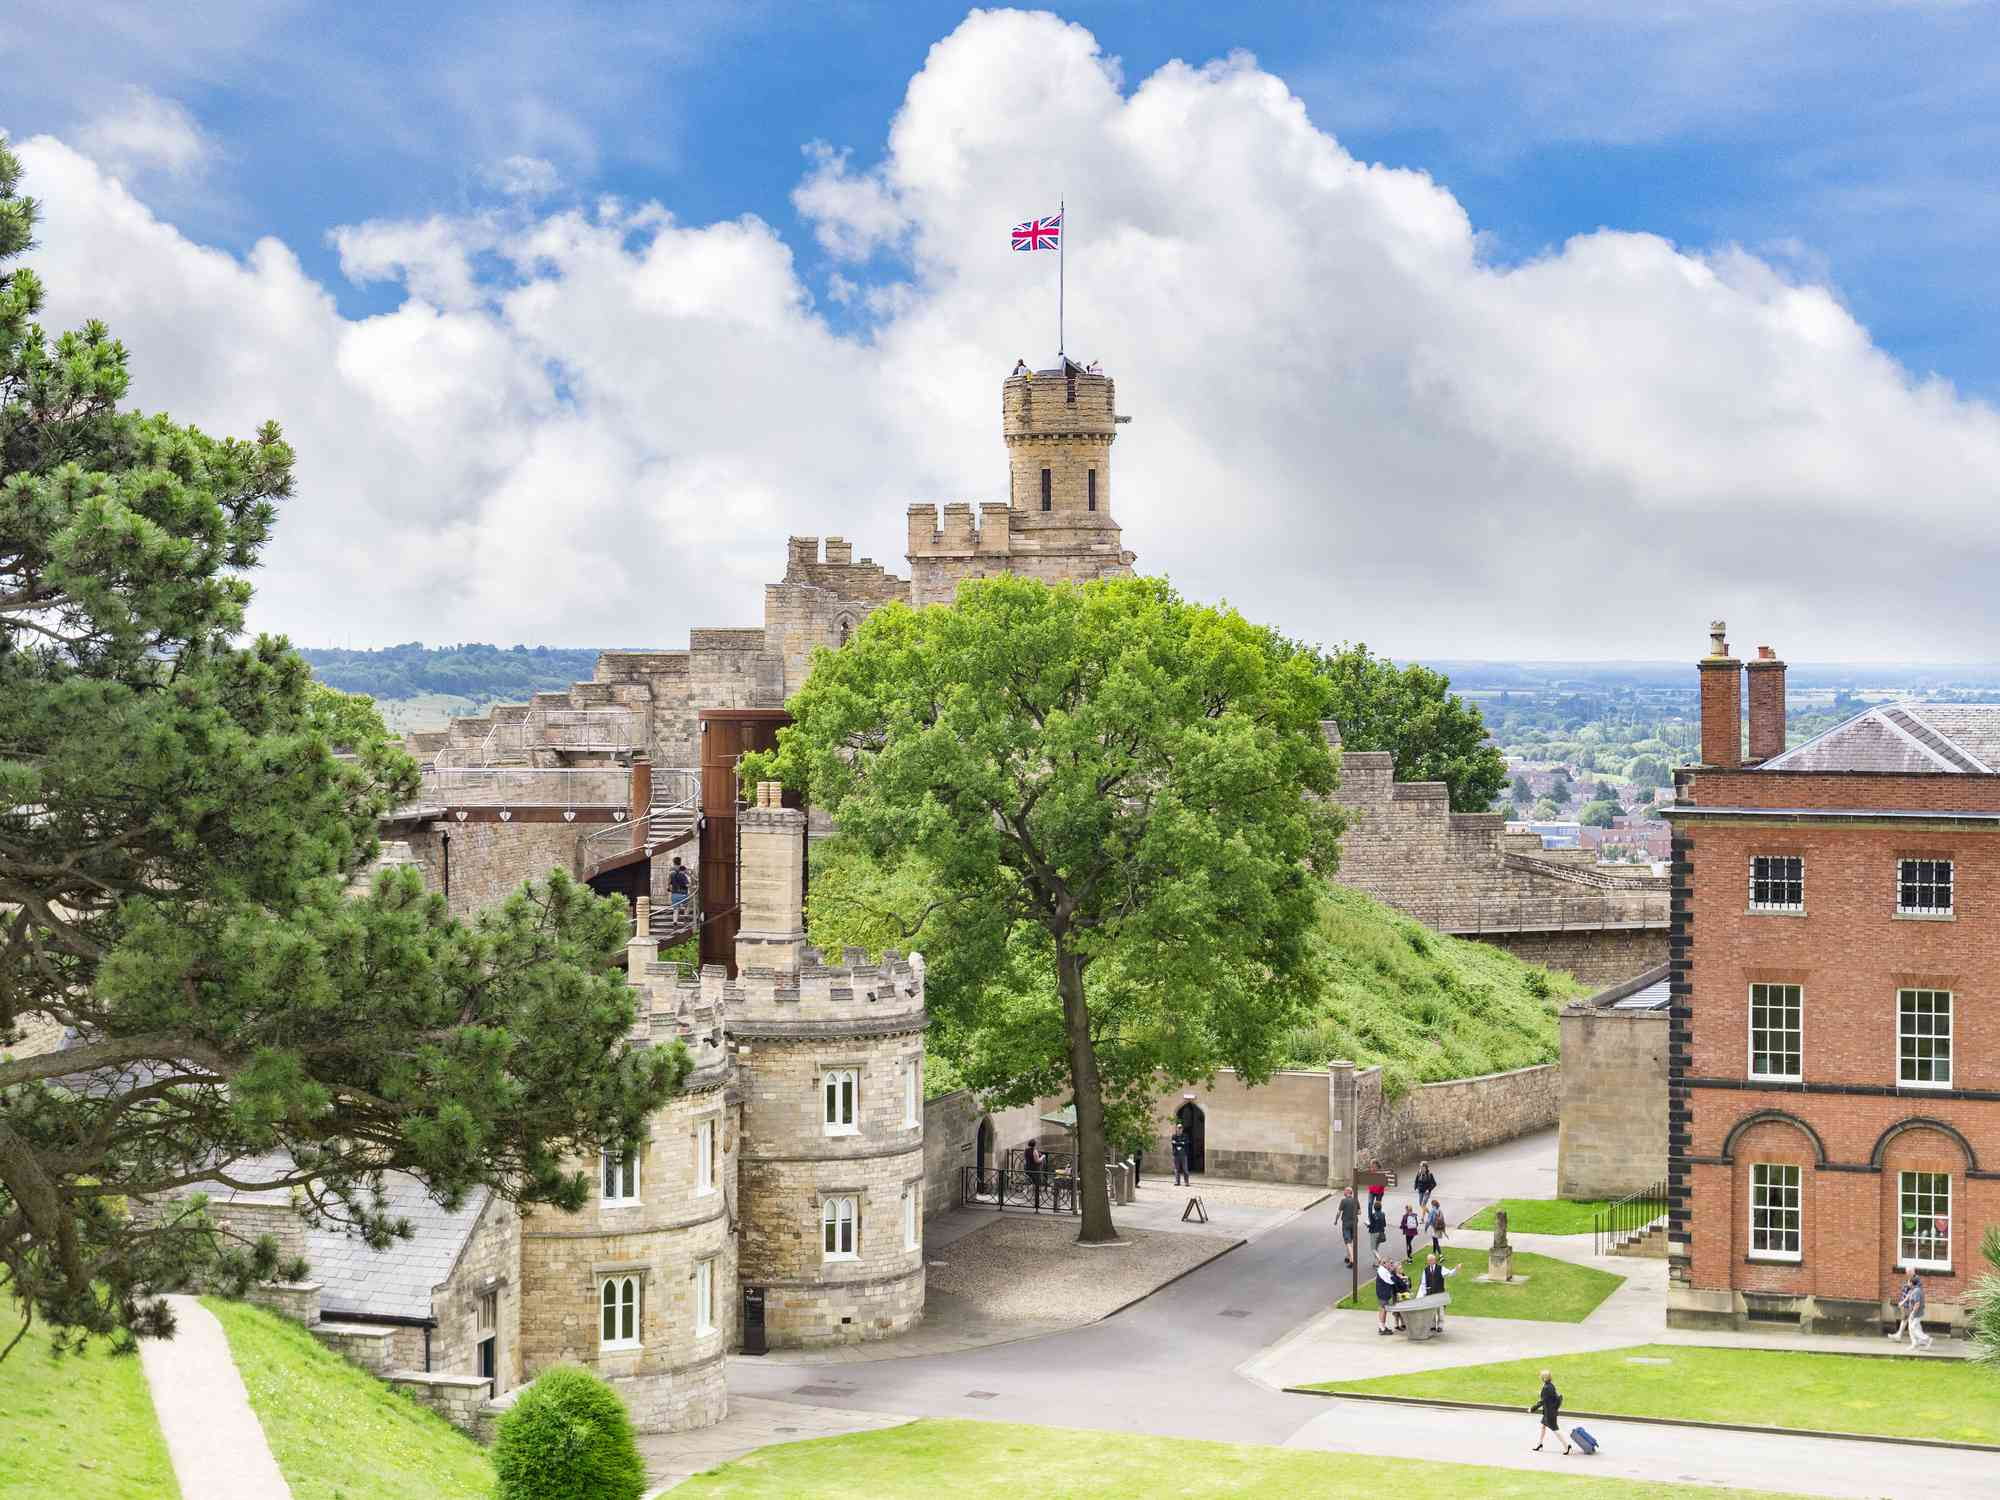 Lincoln Castle, UK, with Tourists Walking in the Grounds